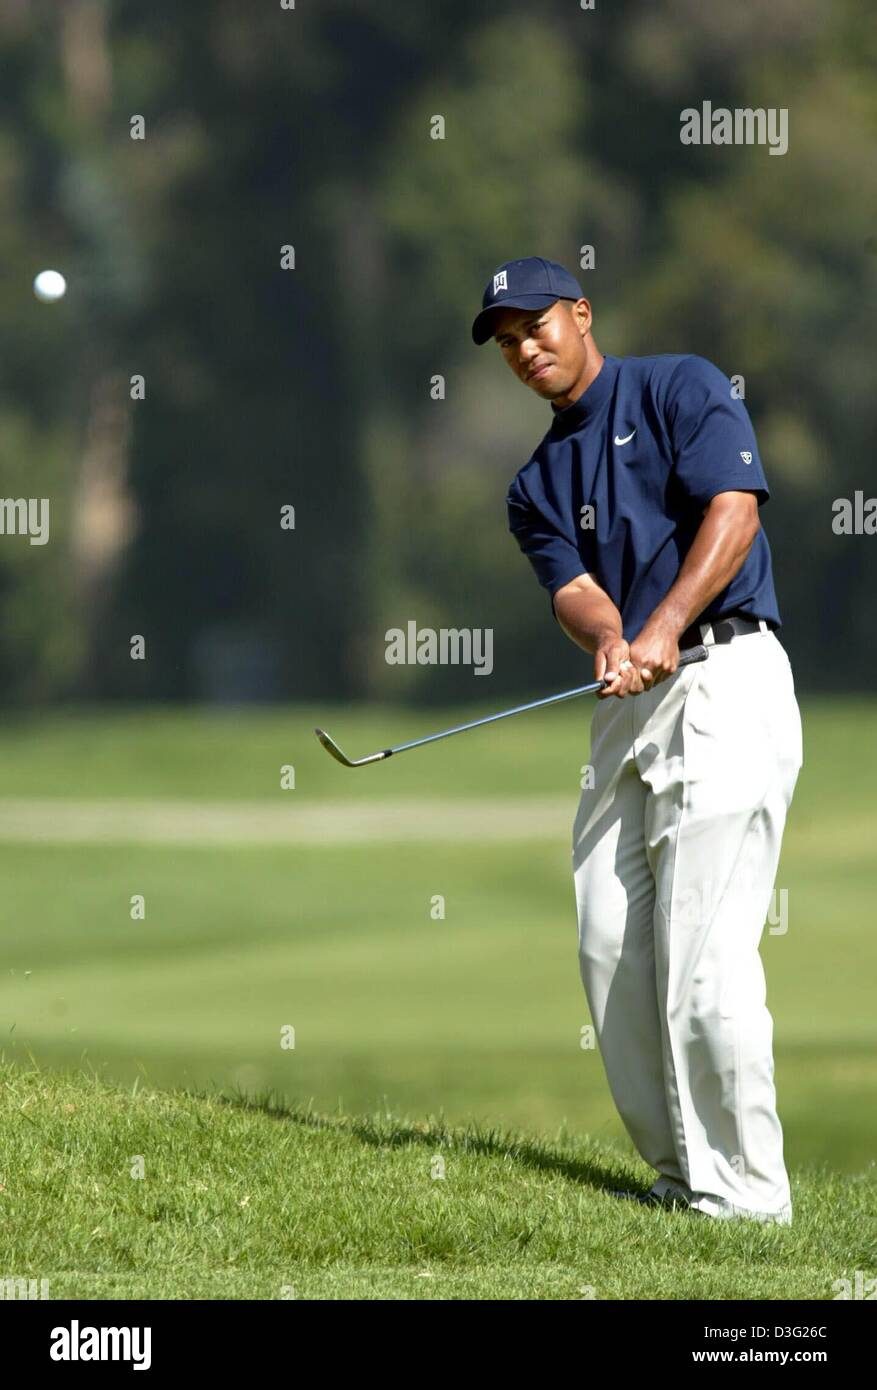 tiger woods hitting golf ball stock photos  u0026 tiger woods